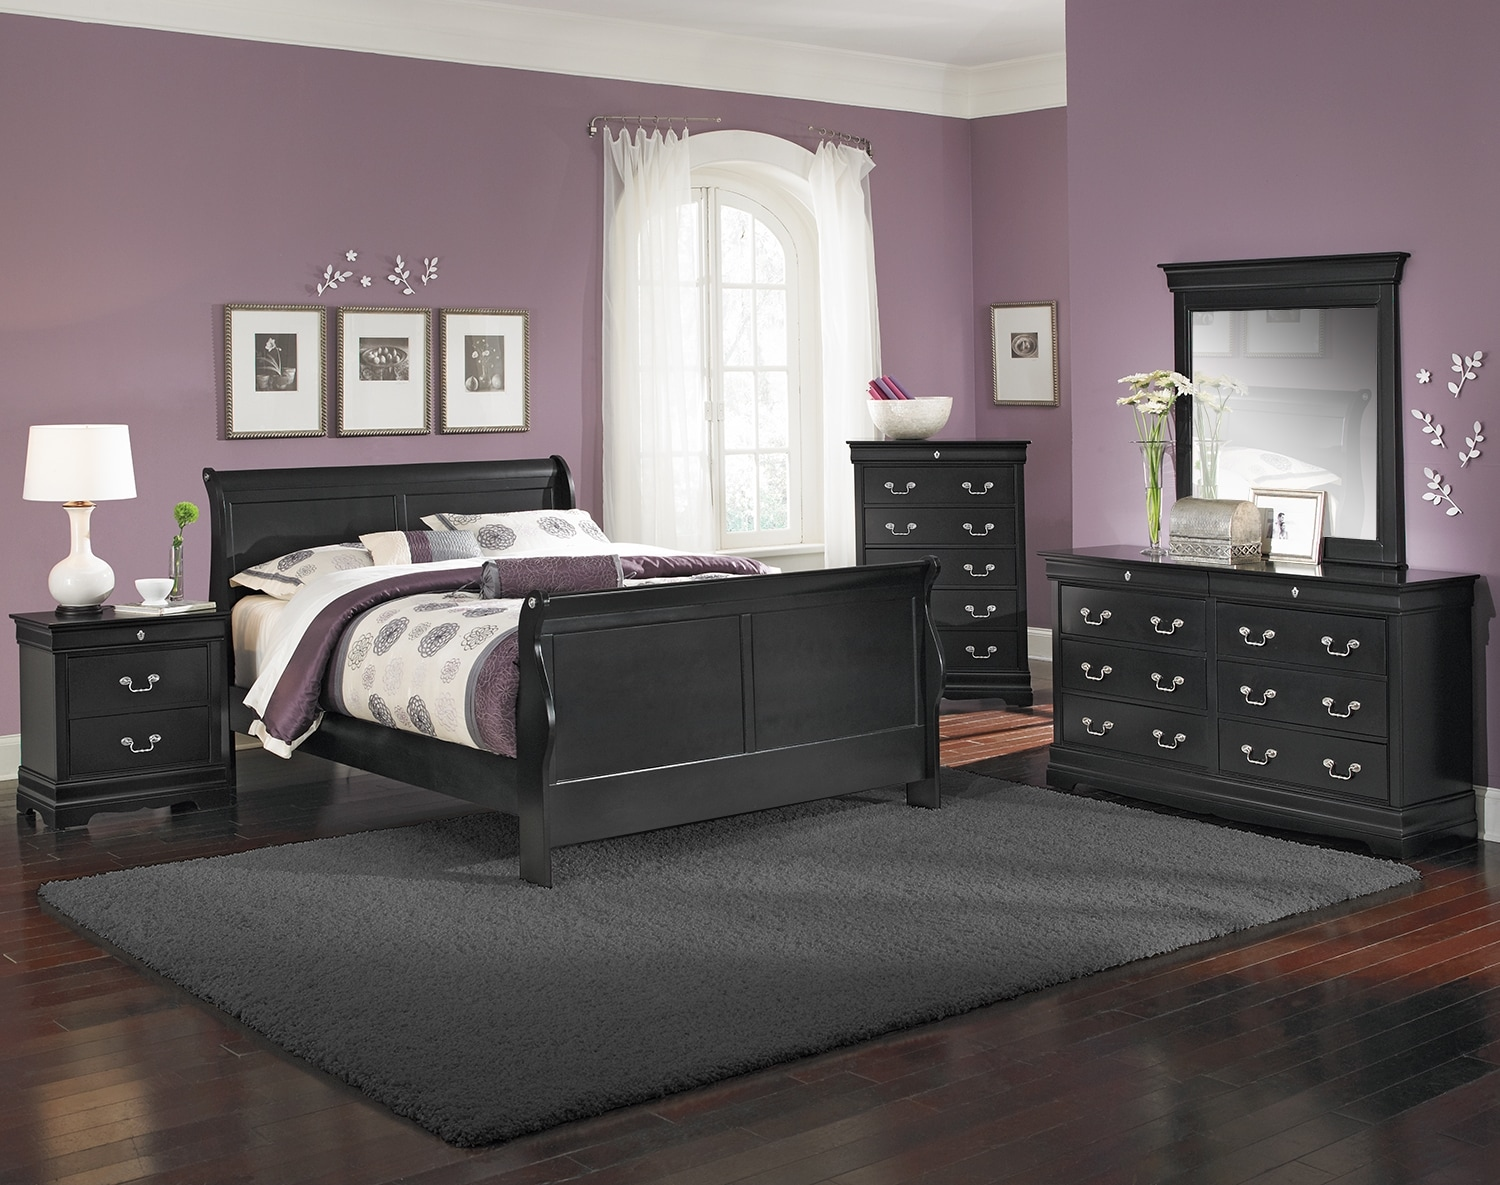 The Neo Classic Youth Bedroom Collection   Black. The Neo Classic Youth Bedroom Collection   Black   Value City